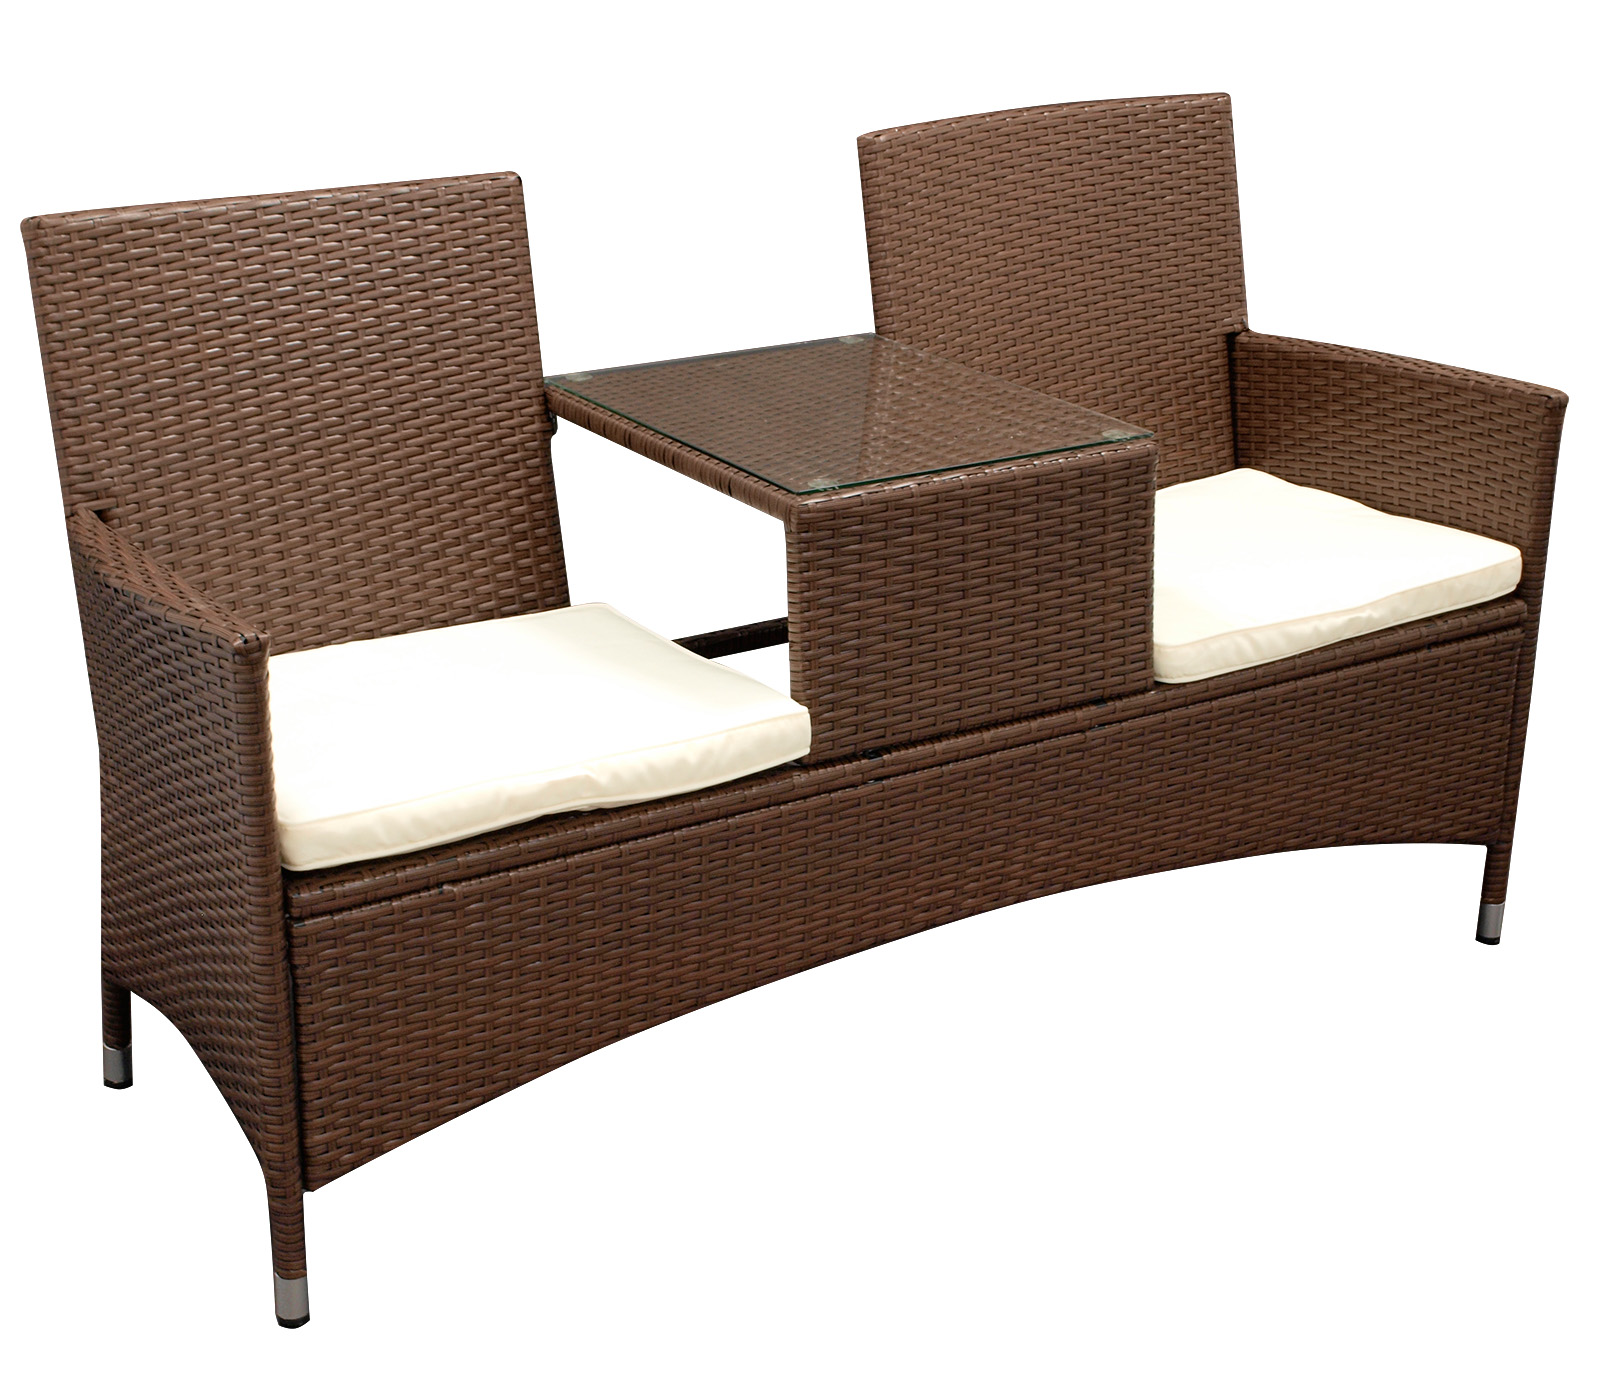 gartenbank rattanbank mit tisch gartenm bel bank san vincenzo polyrattan braun ebay. Black Bedroom Furniture Sets. Home Design Ideas